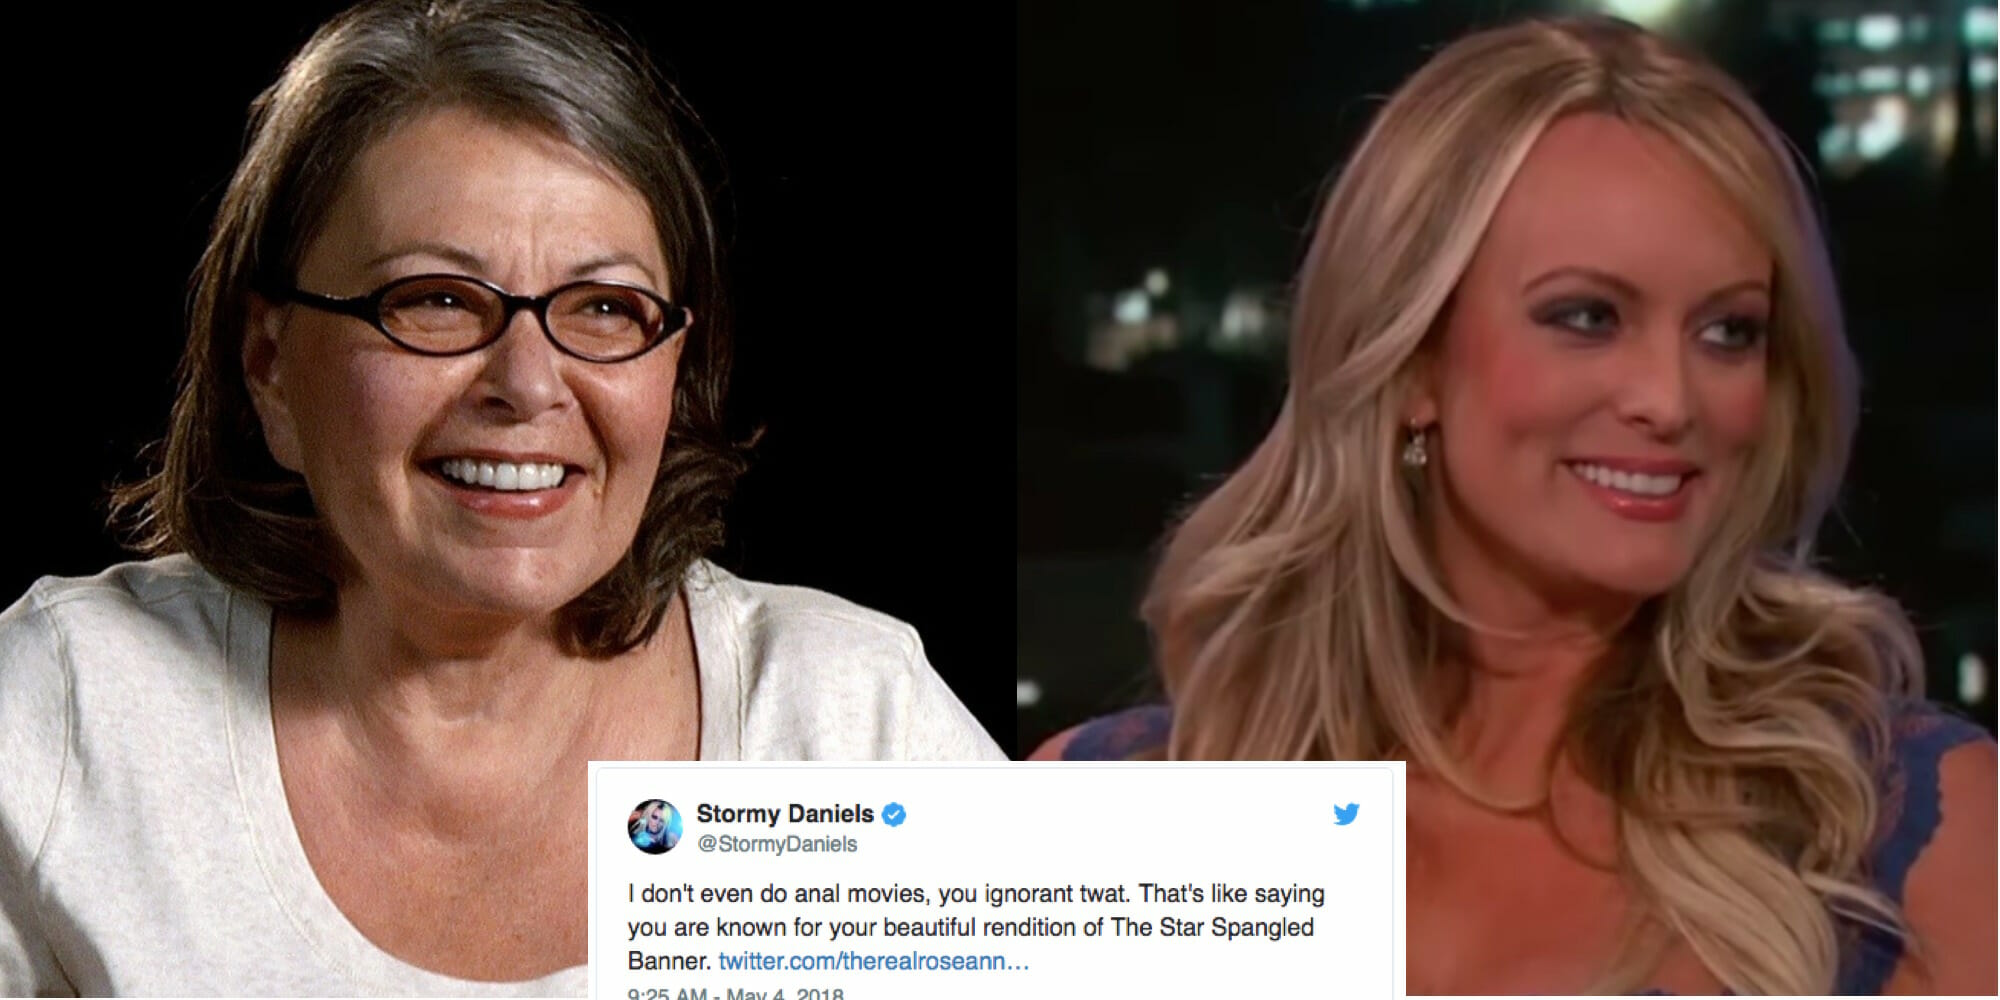 Stormy Daniels  Roseanne Barr Spat on Twitter  Society Grieves Stormy Daniels spars with Roseanne Barr on Twitter over anal sex  national  anthem